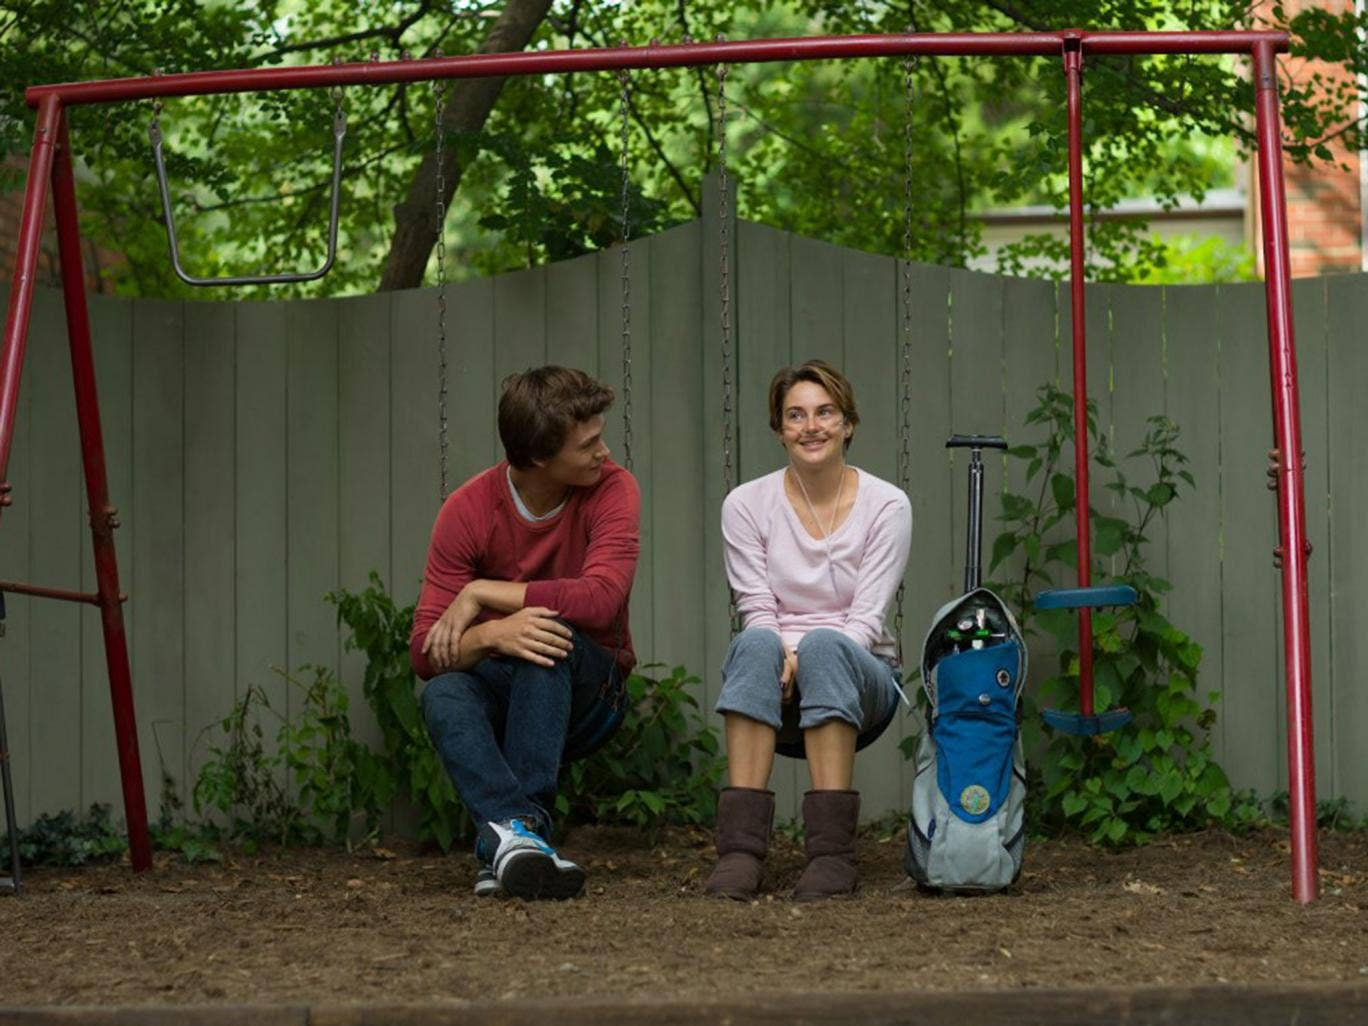 Shailene Woodley and Ansel Elgort star as Hazel and Gus in The Fault in Our Stars